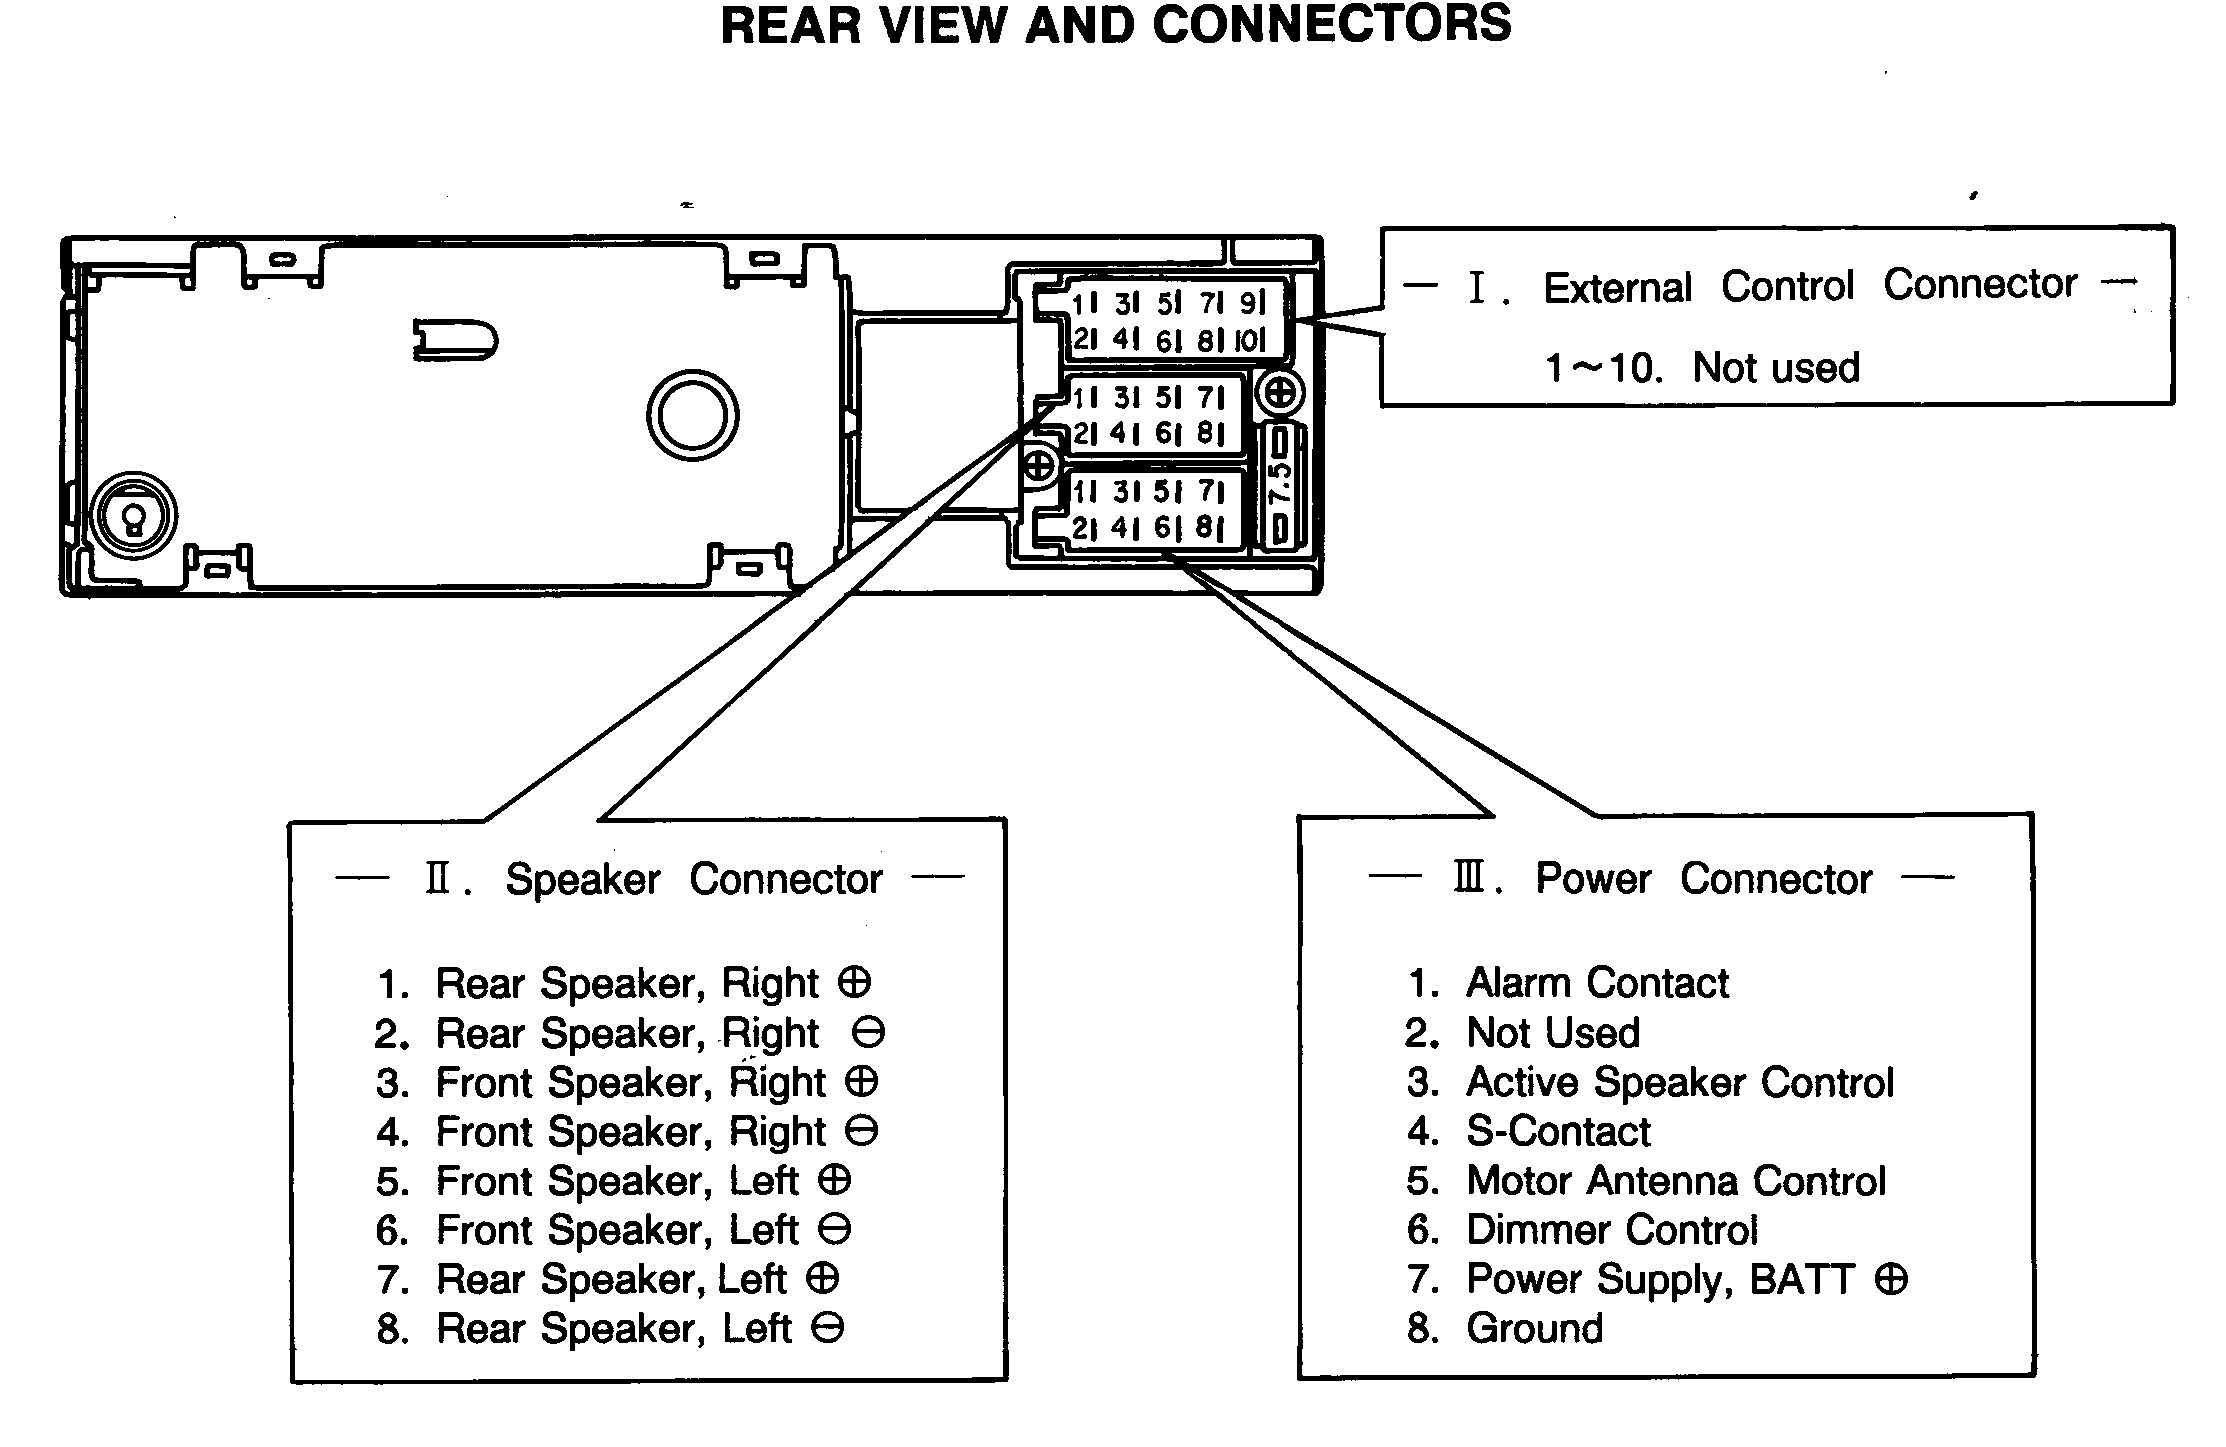 mercedes benz radio wiring diagram Collection-Wrx Alarm Wiring Diagram Valid Audiovox Car Stereo Wiring Diagram 10-g